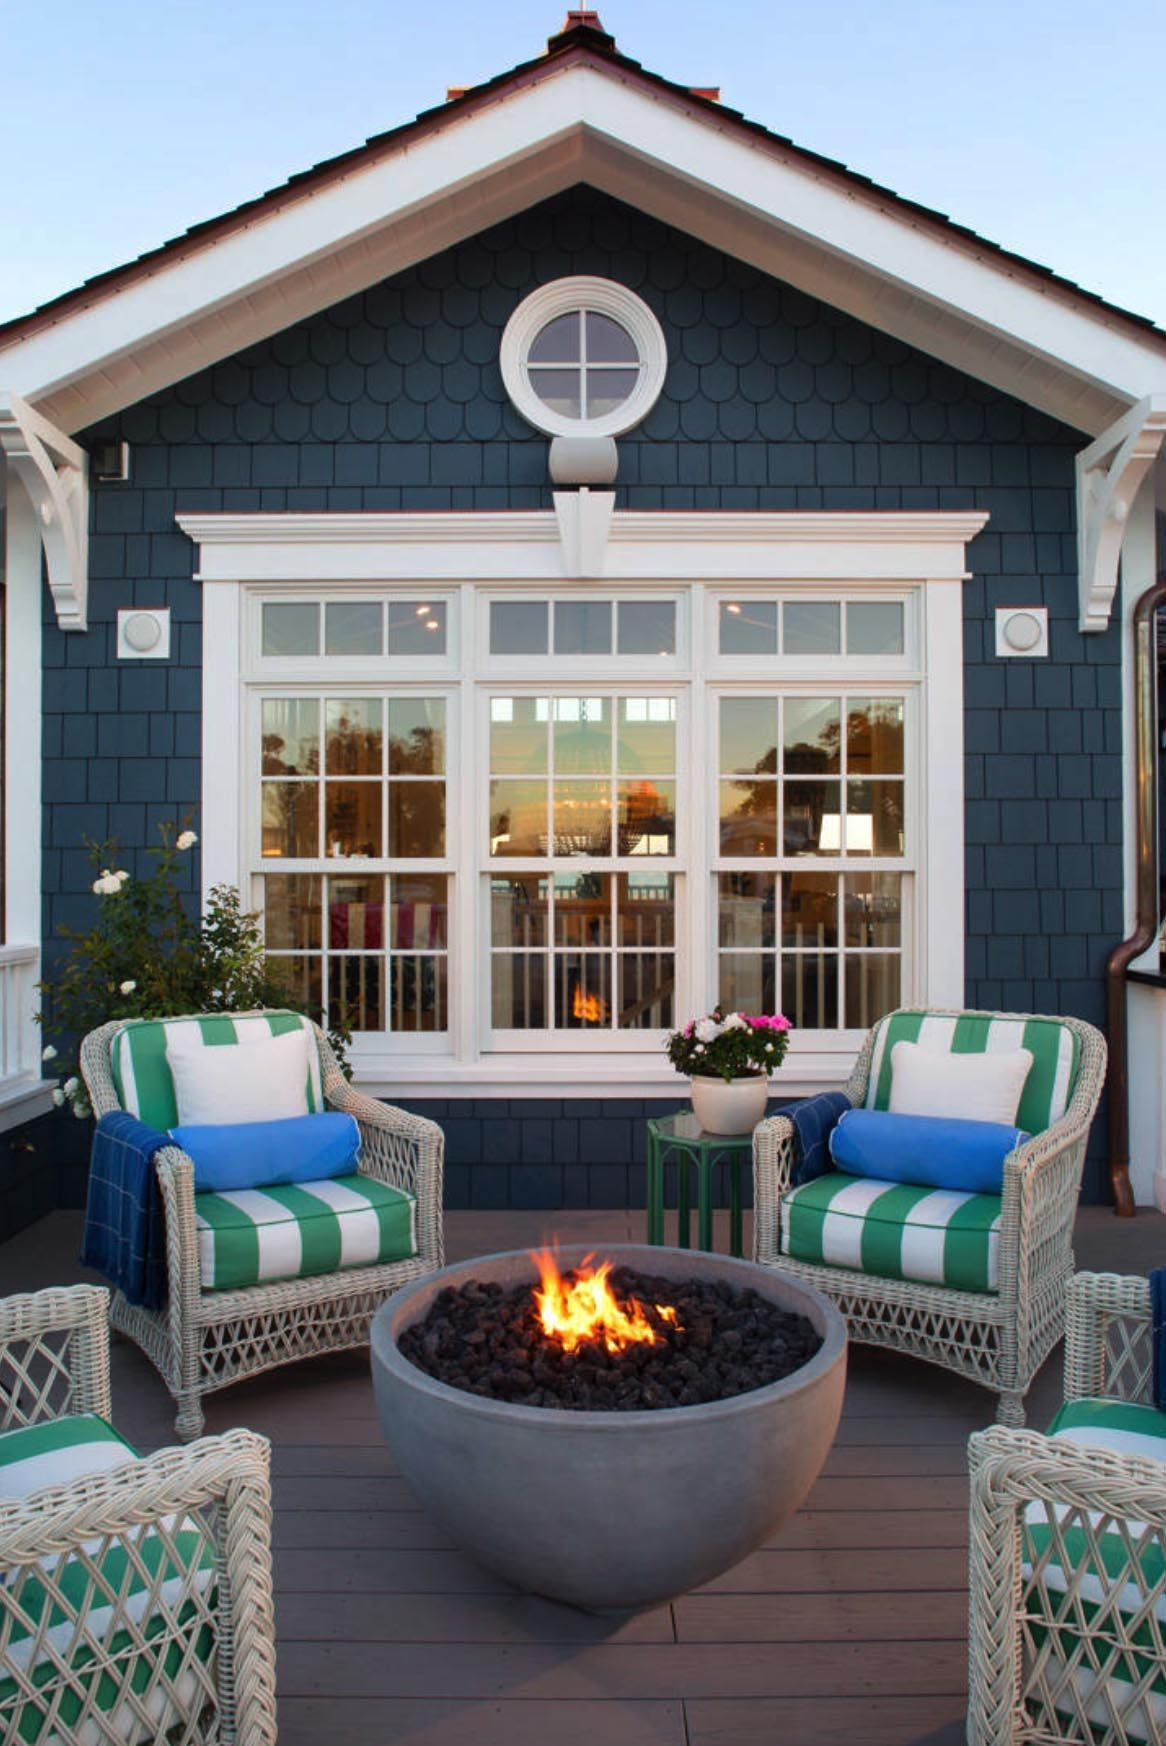 20 Beautiful Coastal Style Outdoor Design Ideas With A Fire Pit In 2020 Beach House Interior Beach House Exterior Beach House Decor